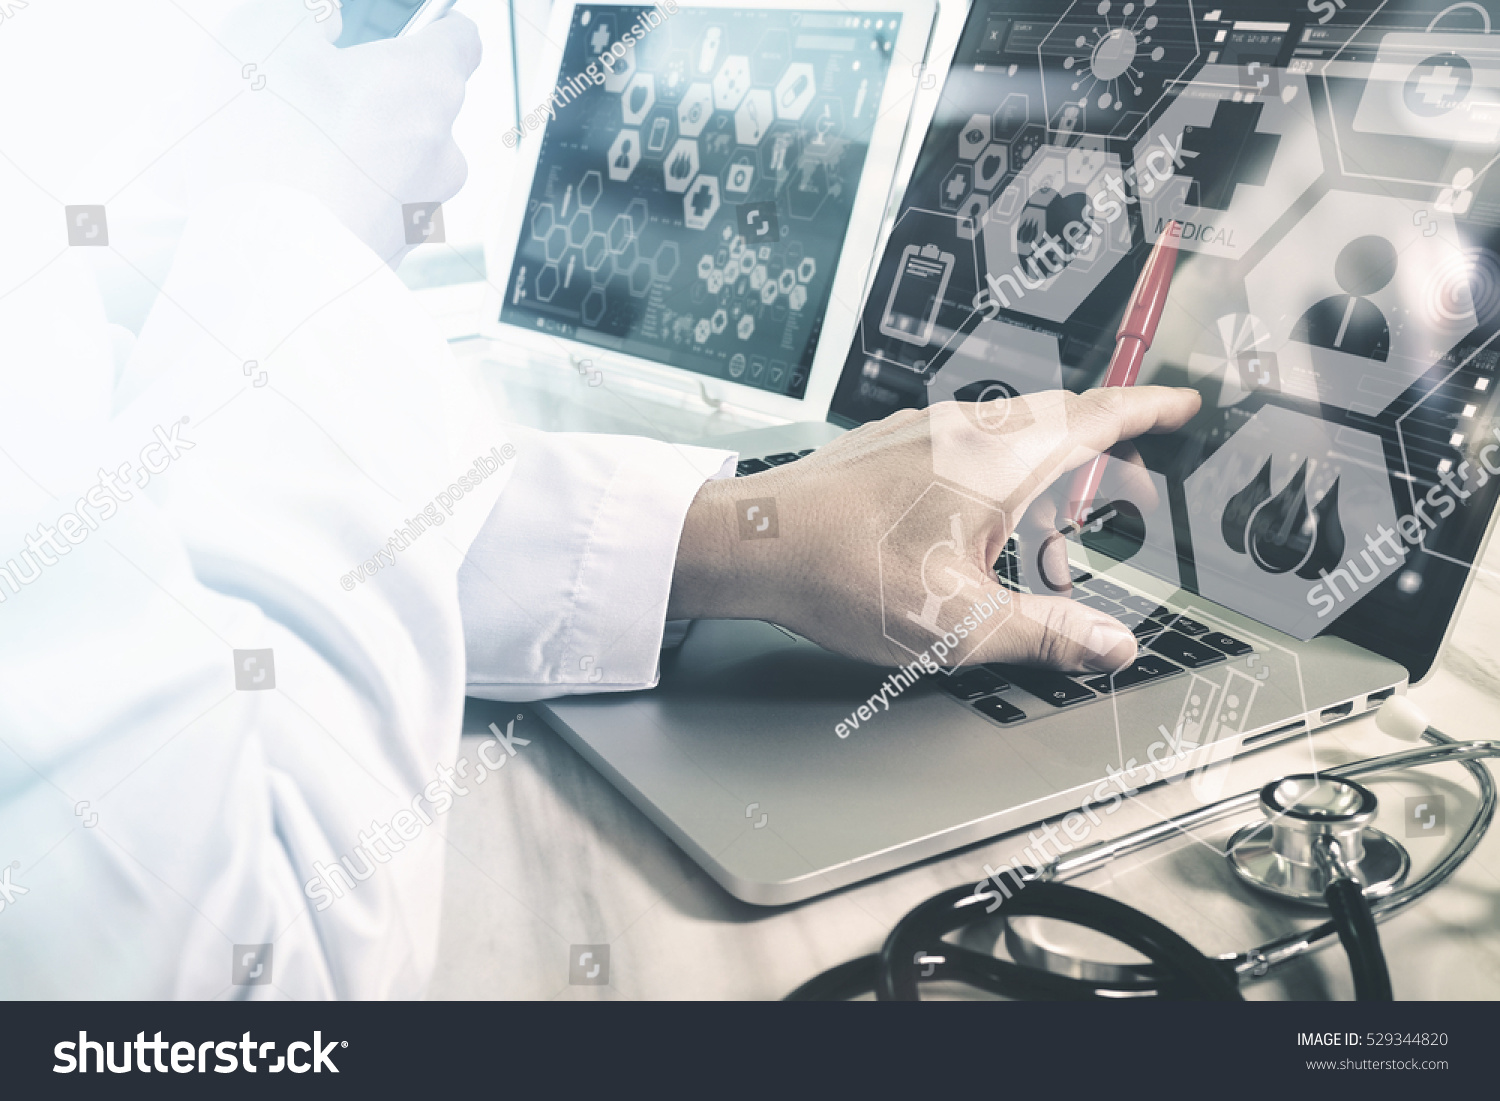 Medical technology concept Doctor hand working with modern smart phone with chart interface multi-channel connection network hospital